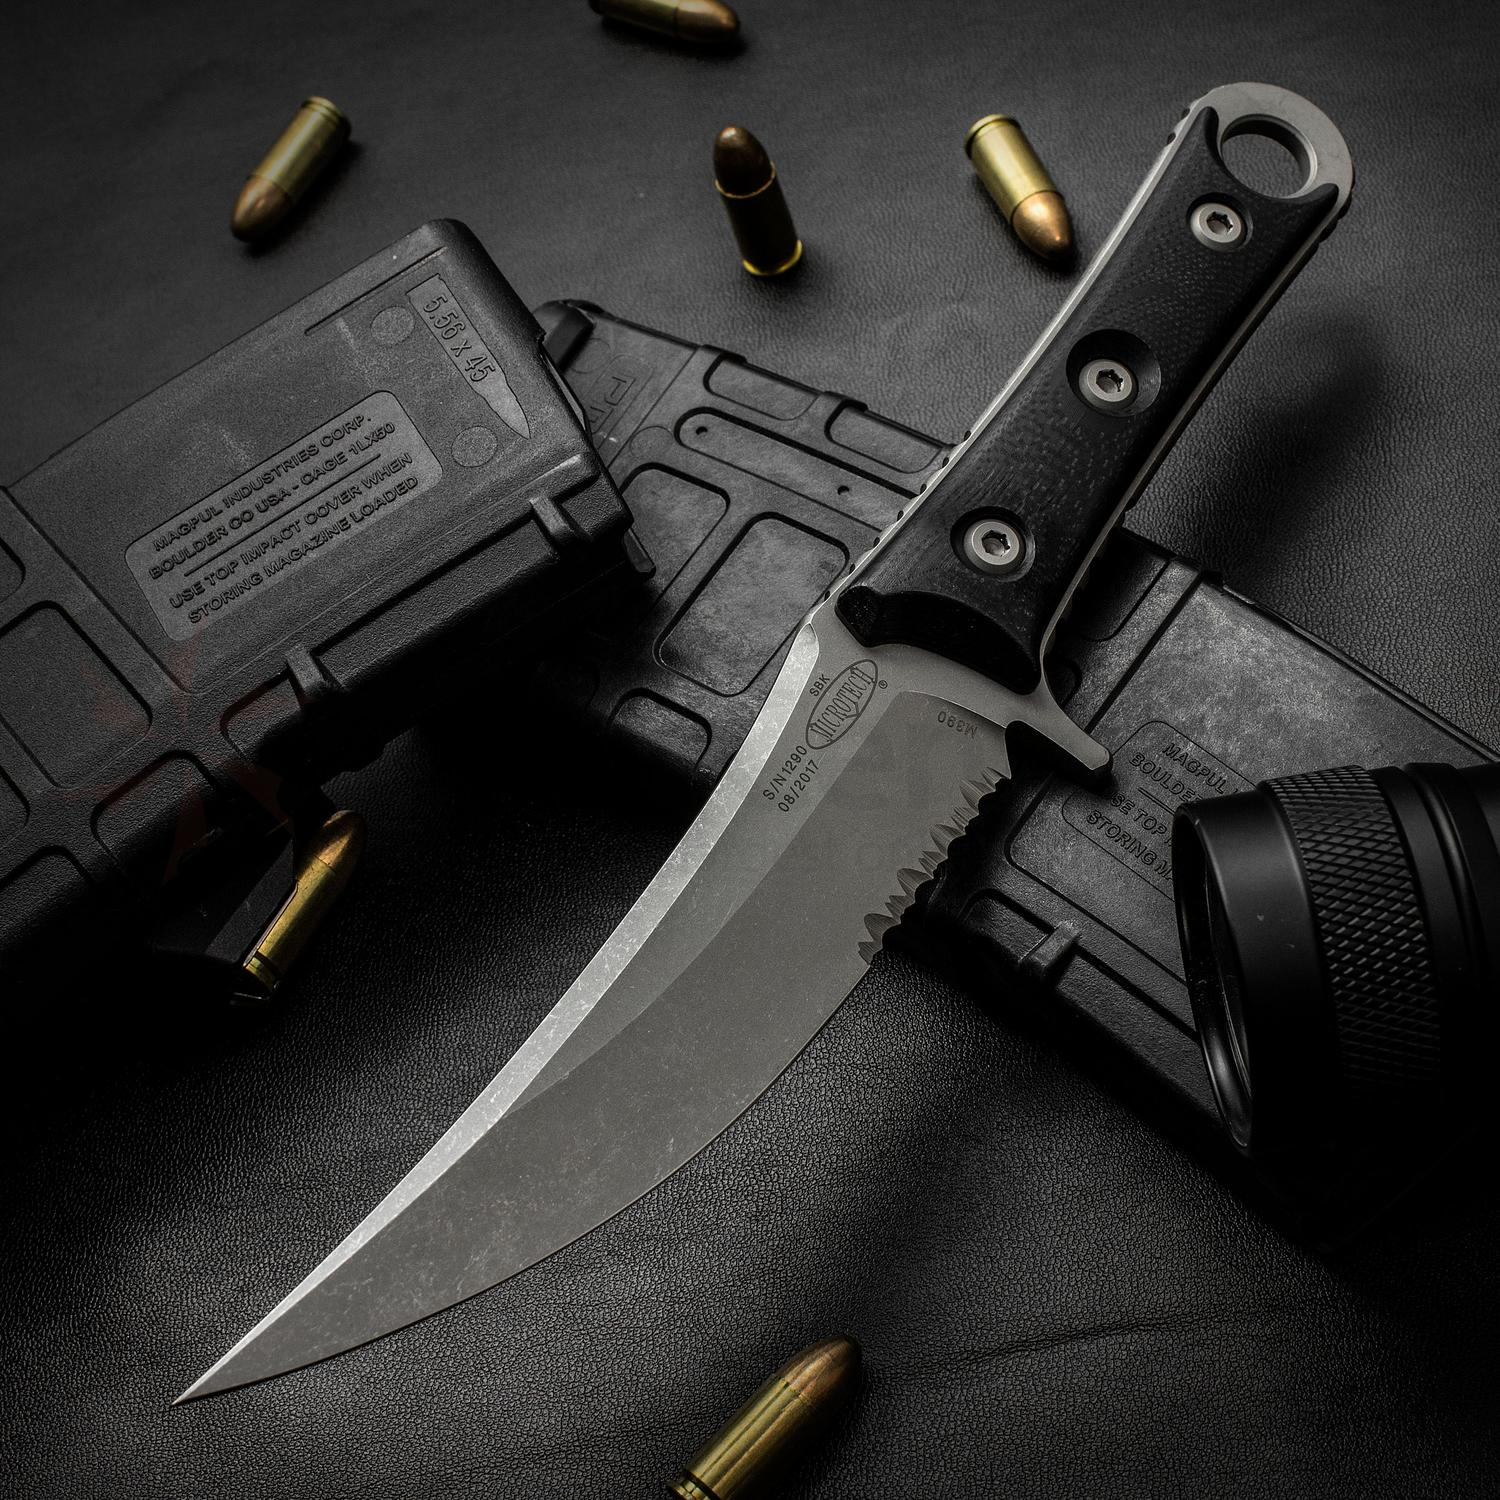 Microtech/Borka Blades 200-11AP SBK Fixed 5.1 inch Apocalyptic Combo Blade, G10 Handles, Kydex Sheath